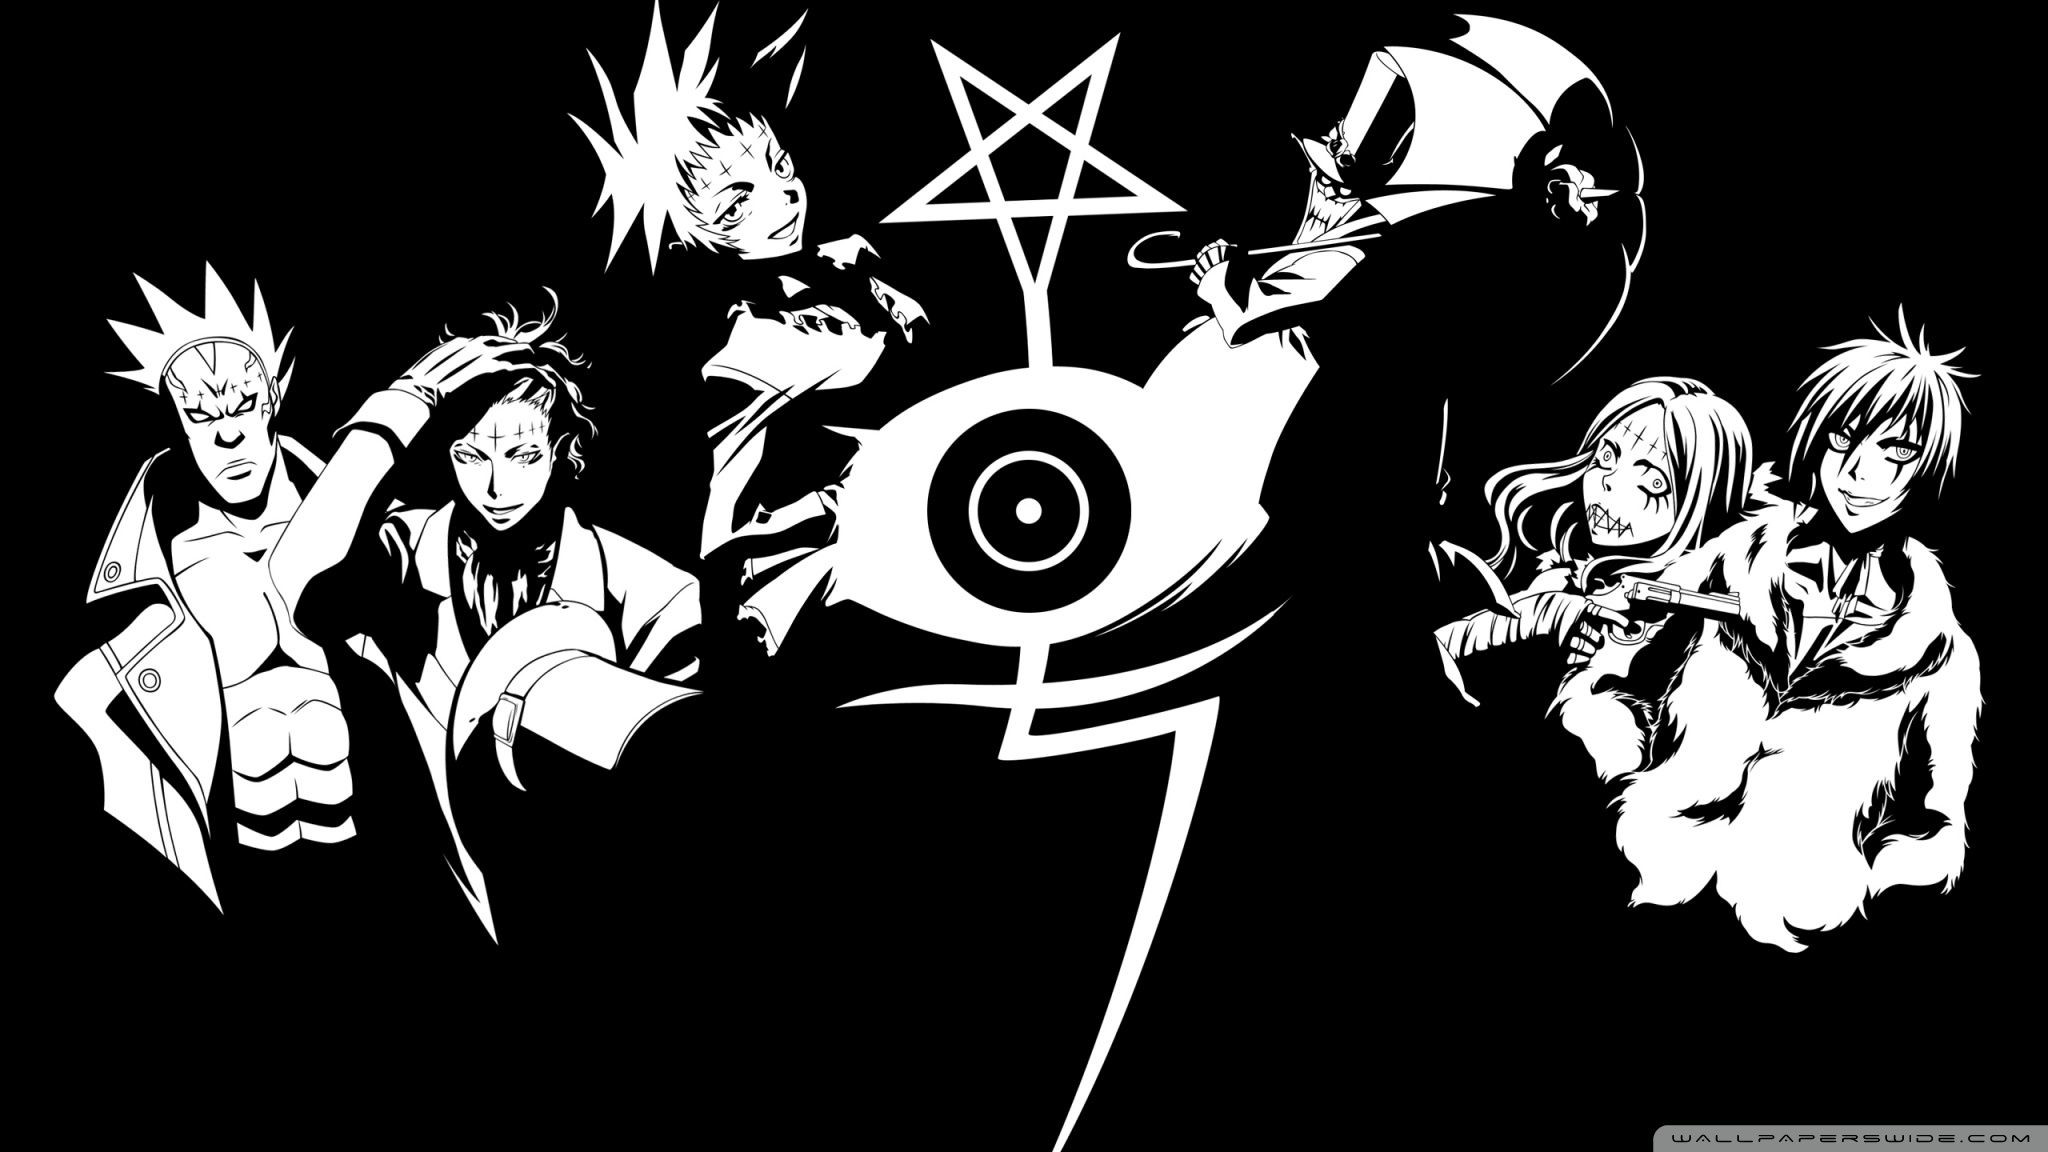 2048x1152 D.Gray-Man HD Wallpapers and Backgrounds